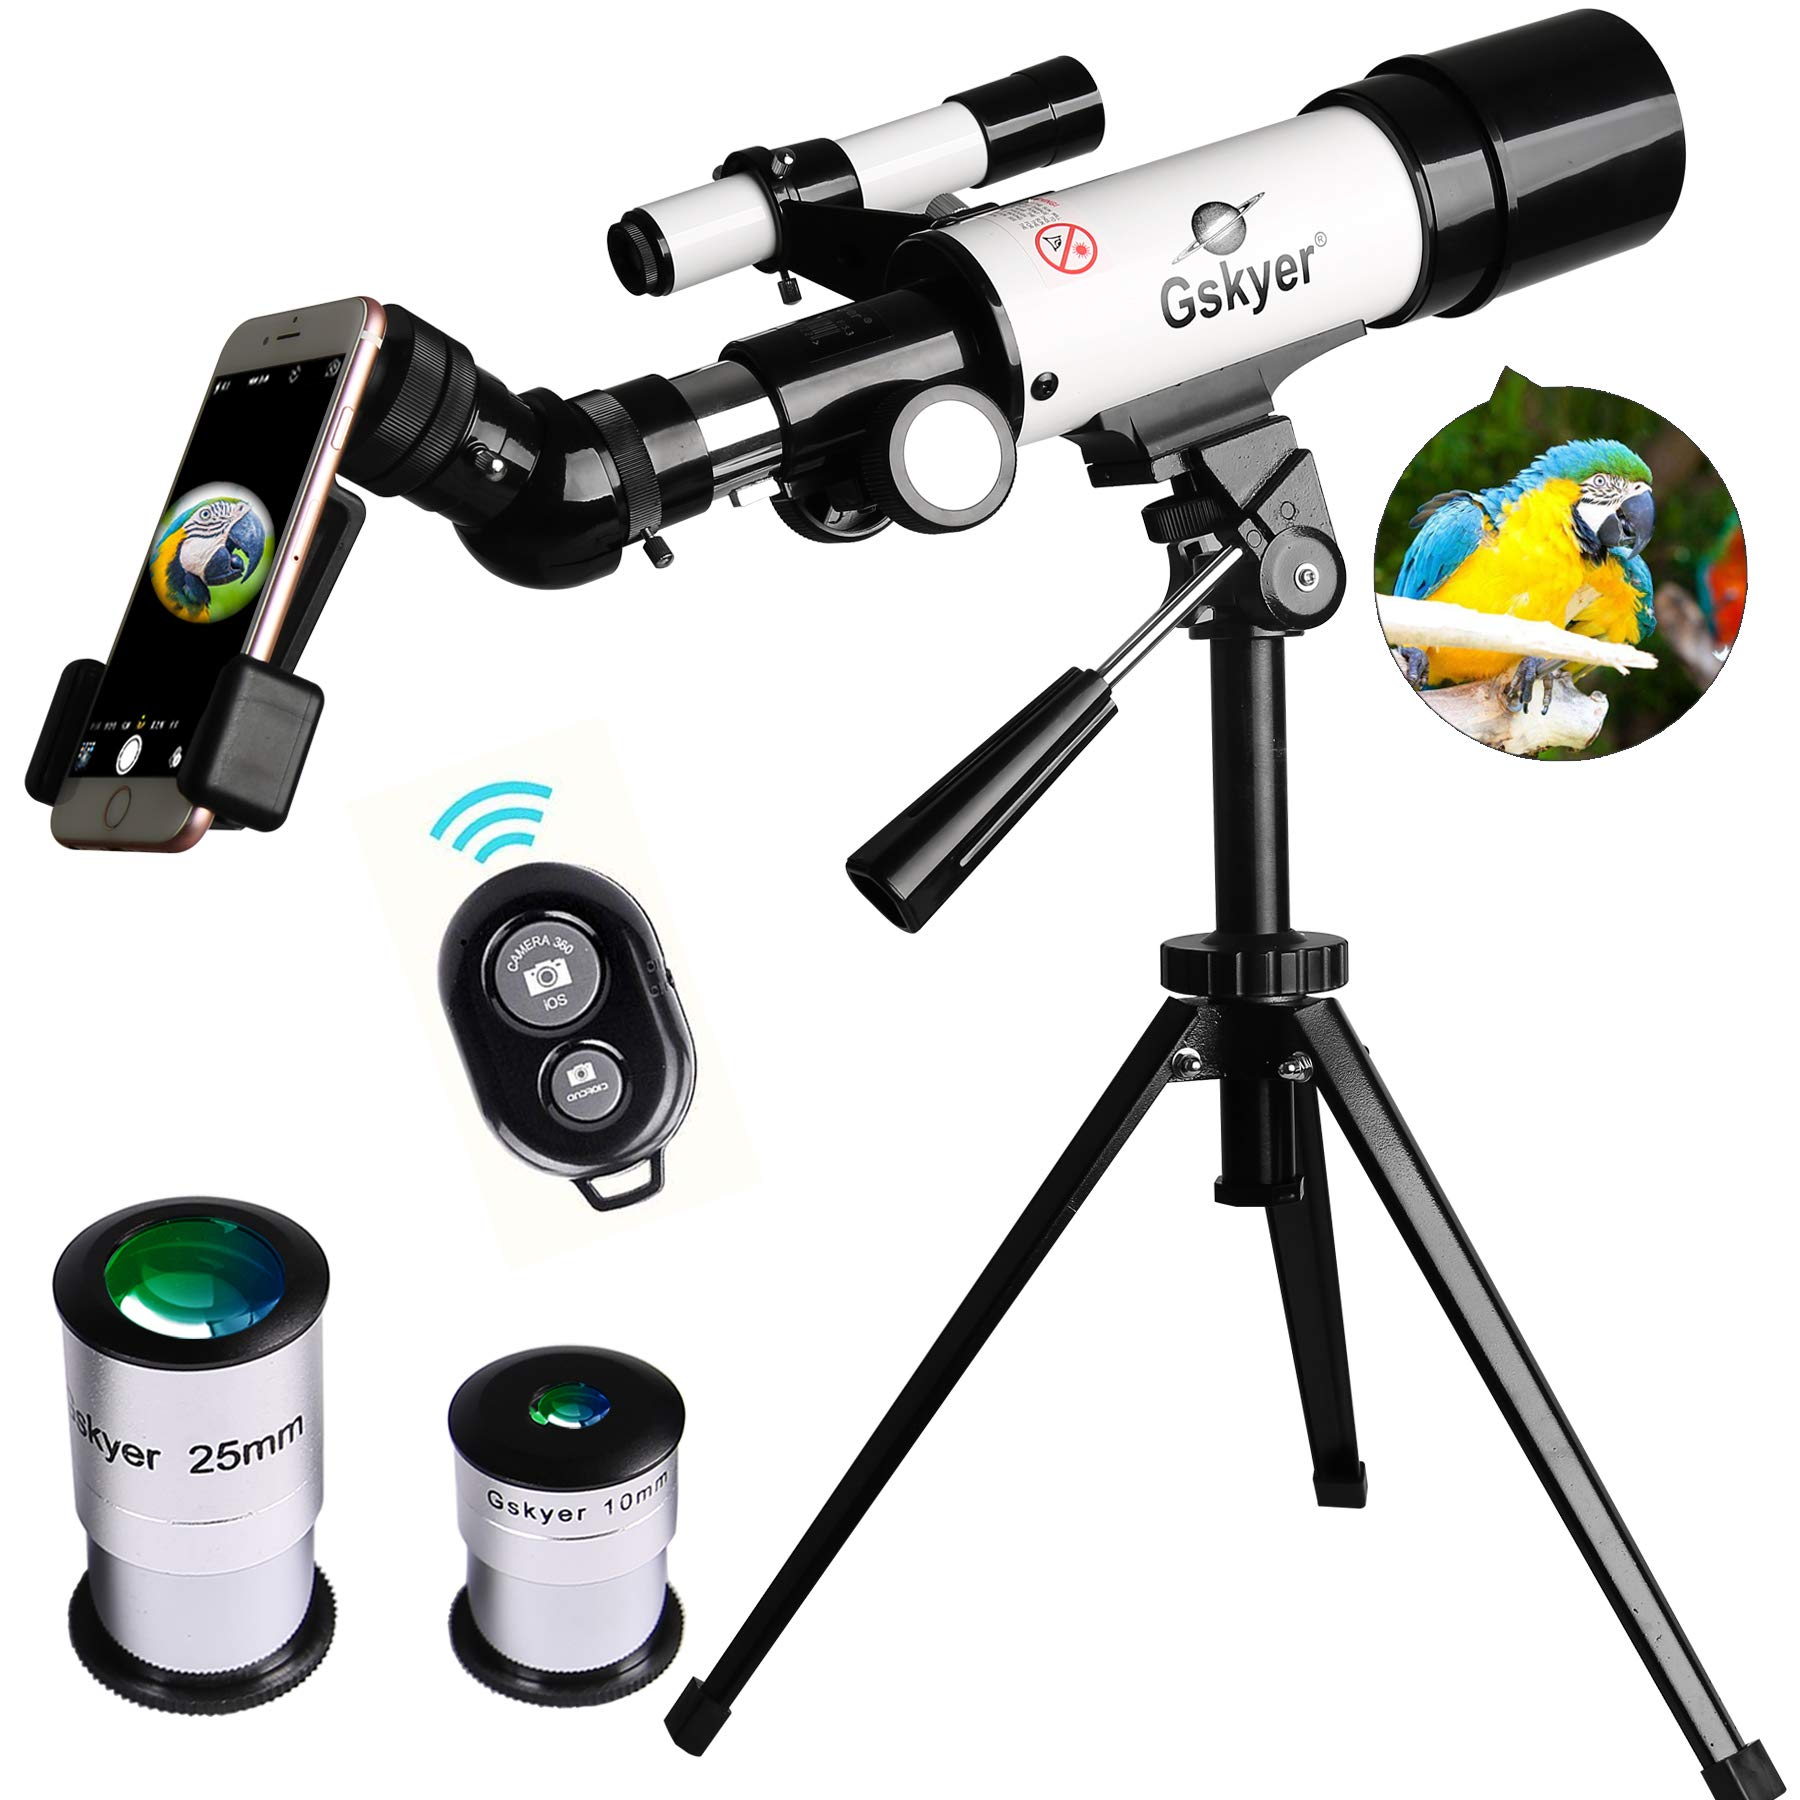 Gskyer AZ60350 Travel Refractor Astronomy Telescope with Wireless Remote Control by Gskyer